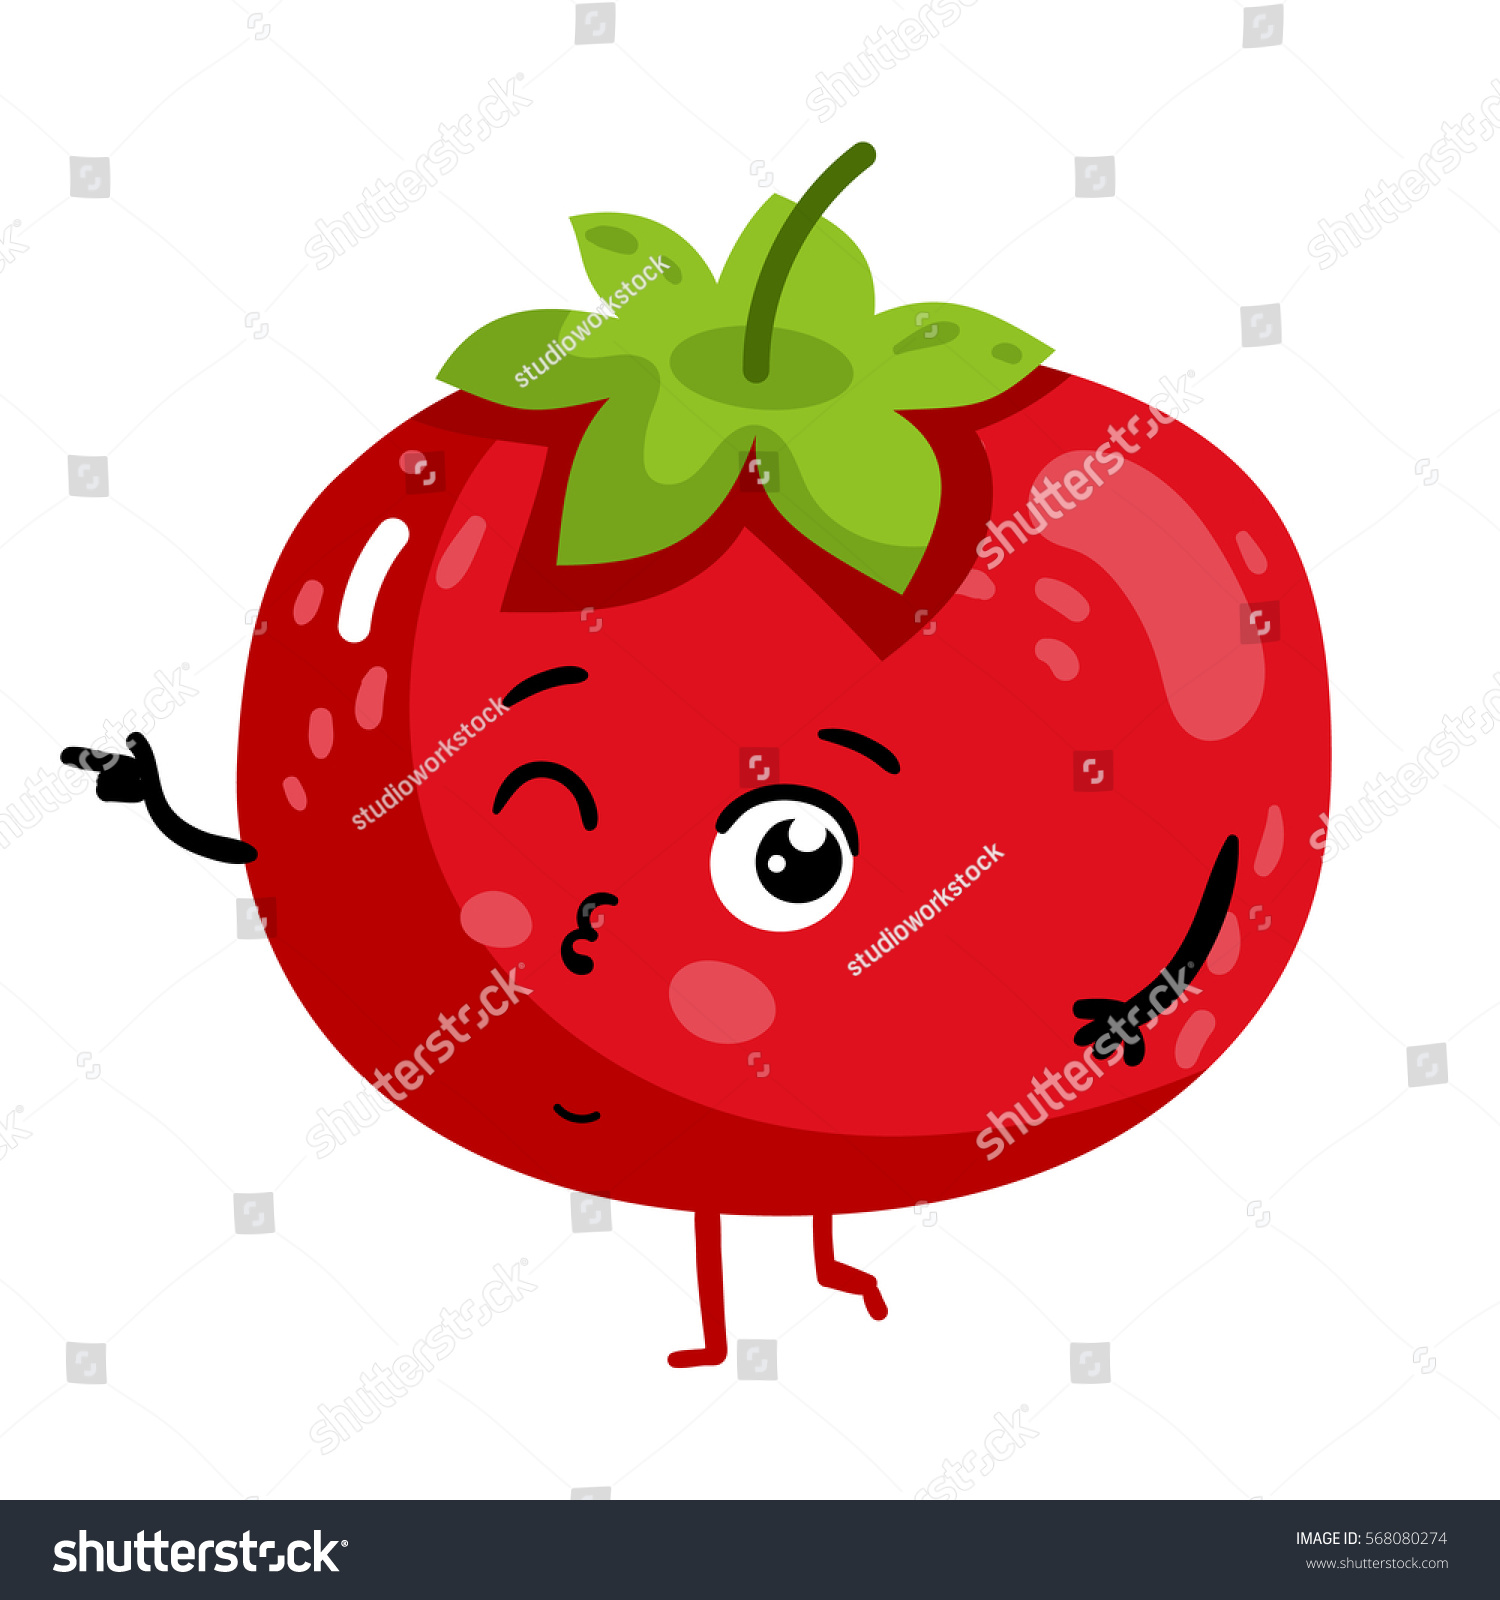 Cute Vegetable Tomato Cartoon Character Isolated Stock ...